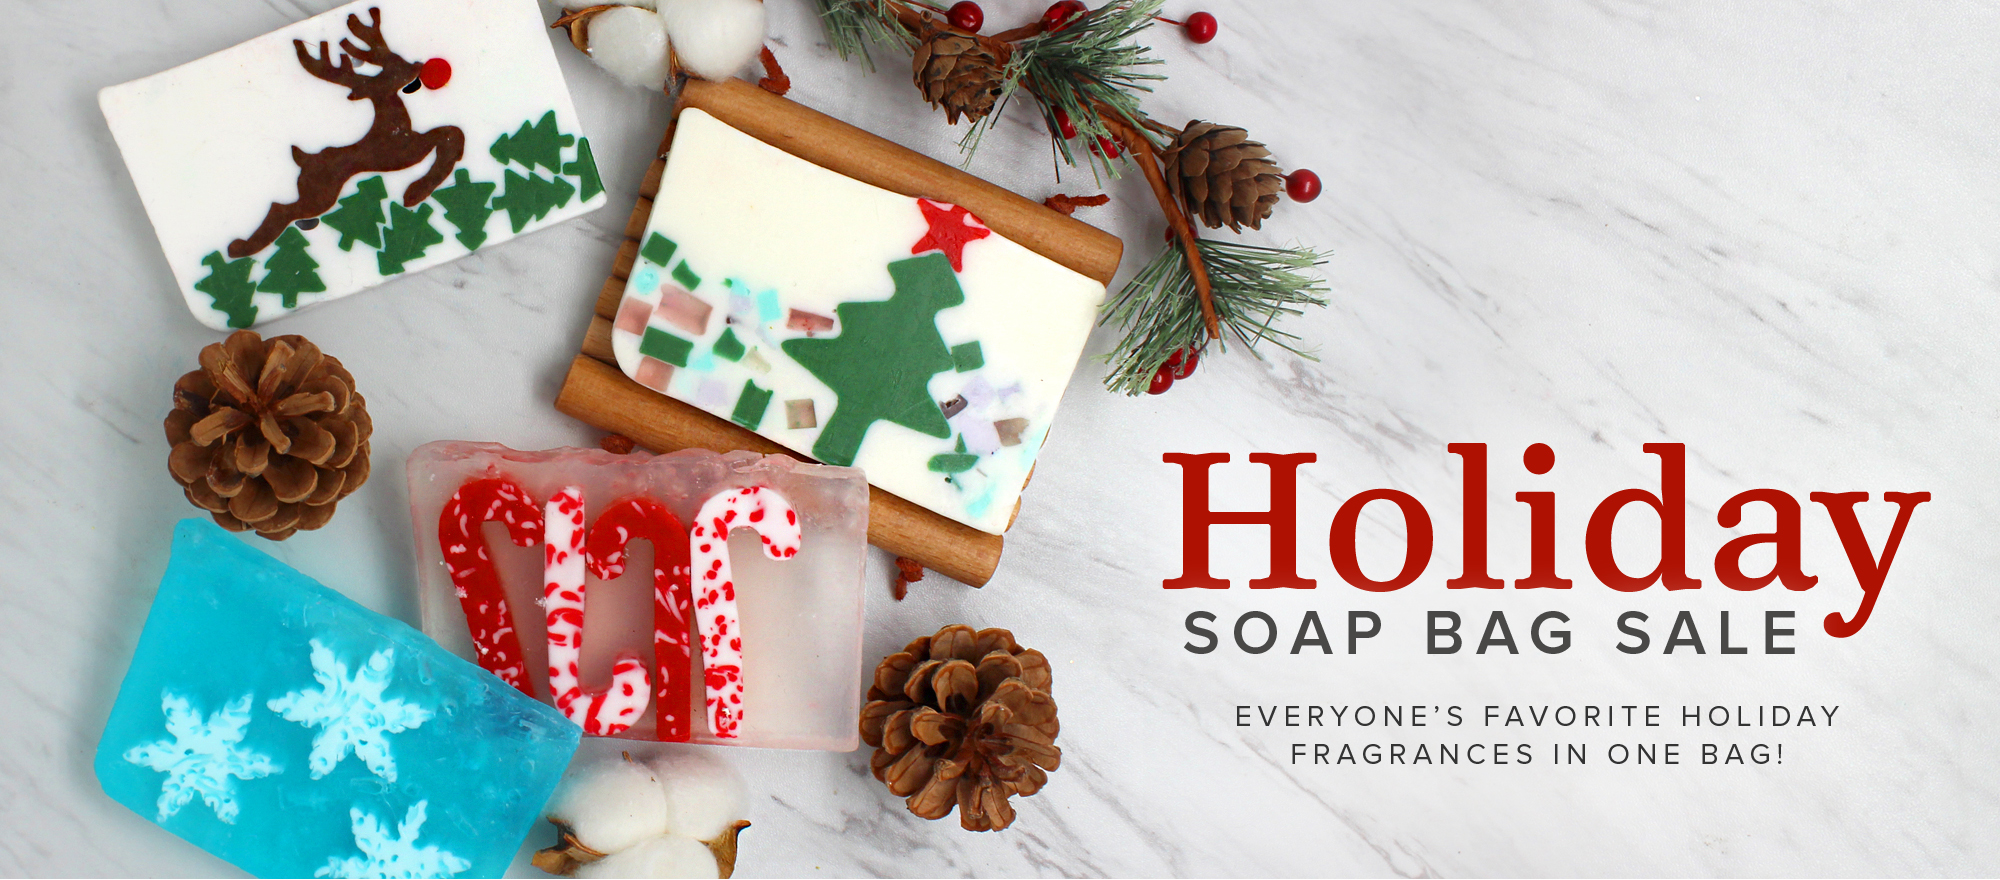 Holiday Soap Bag Sale